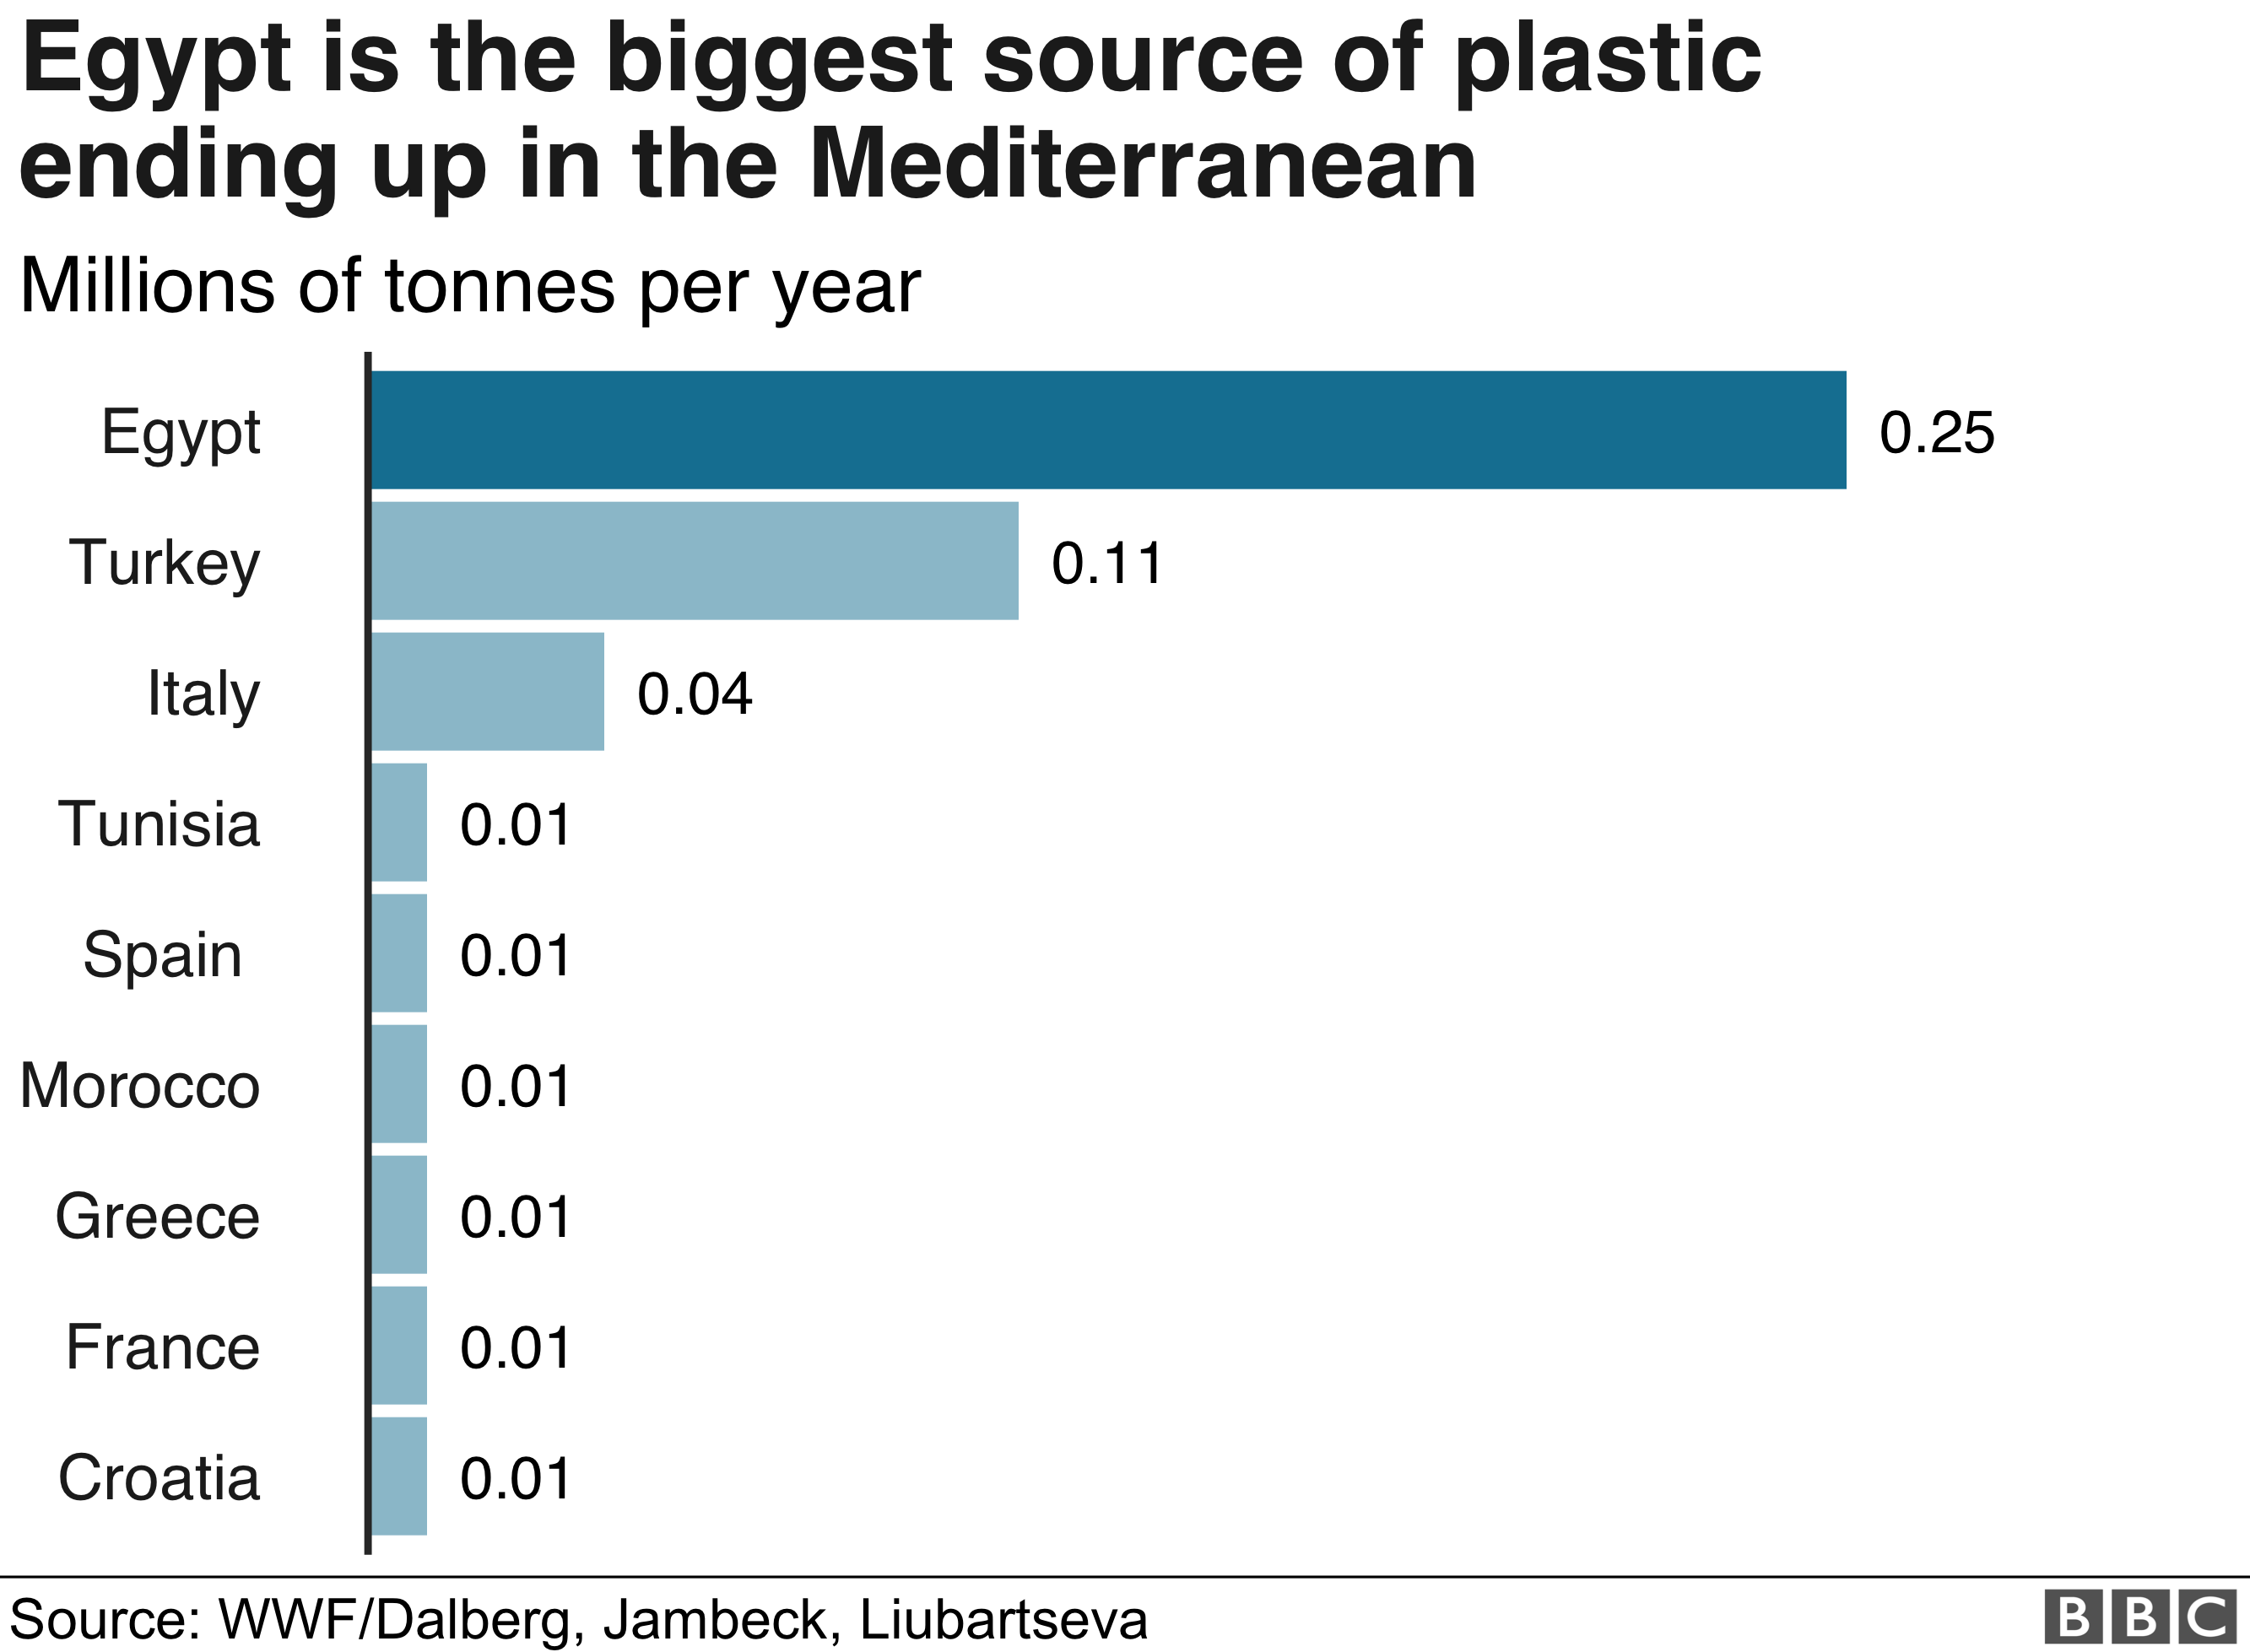 Graph showing plastic waste contributors for the Mediterranean